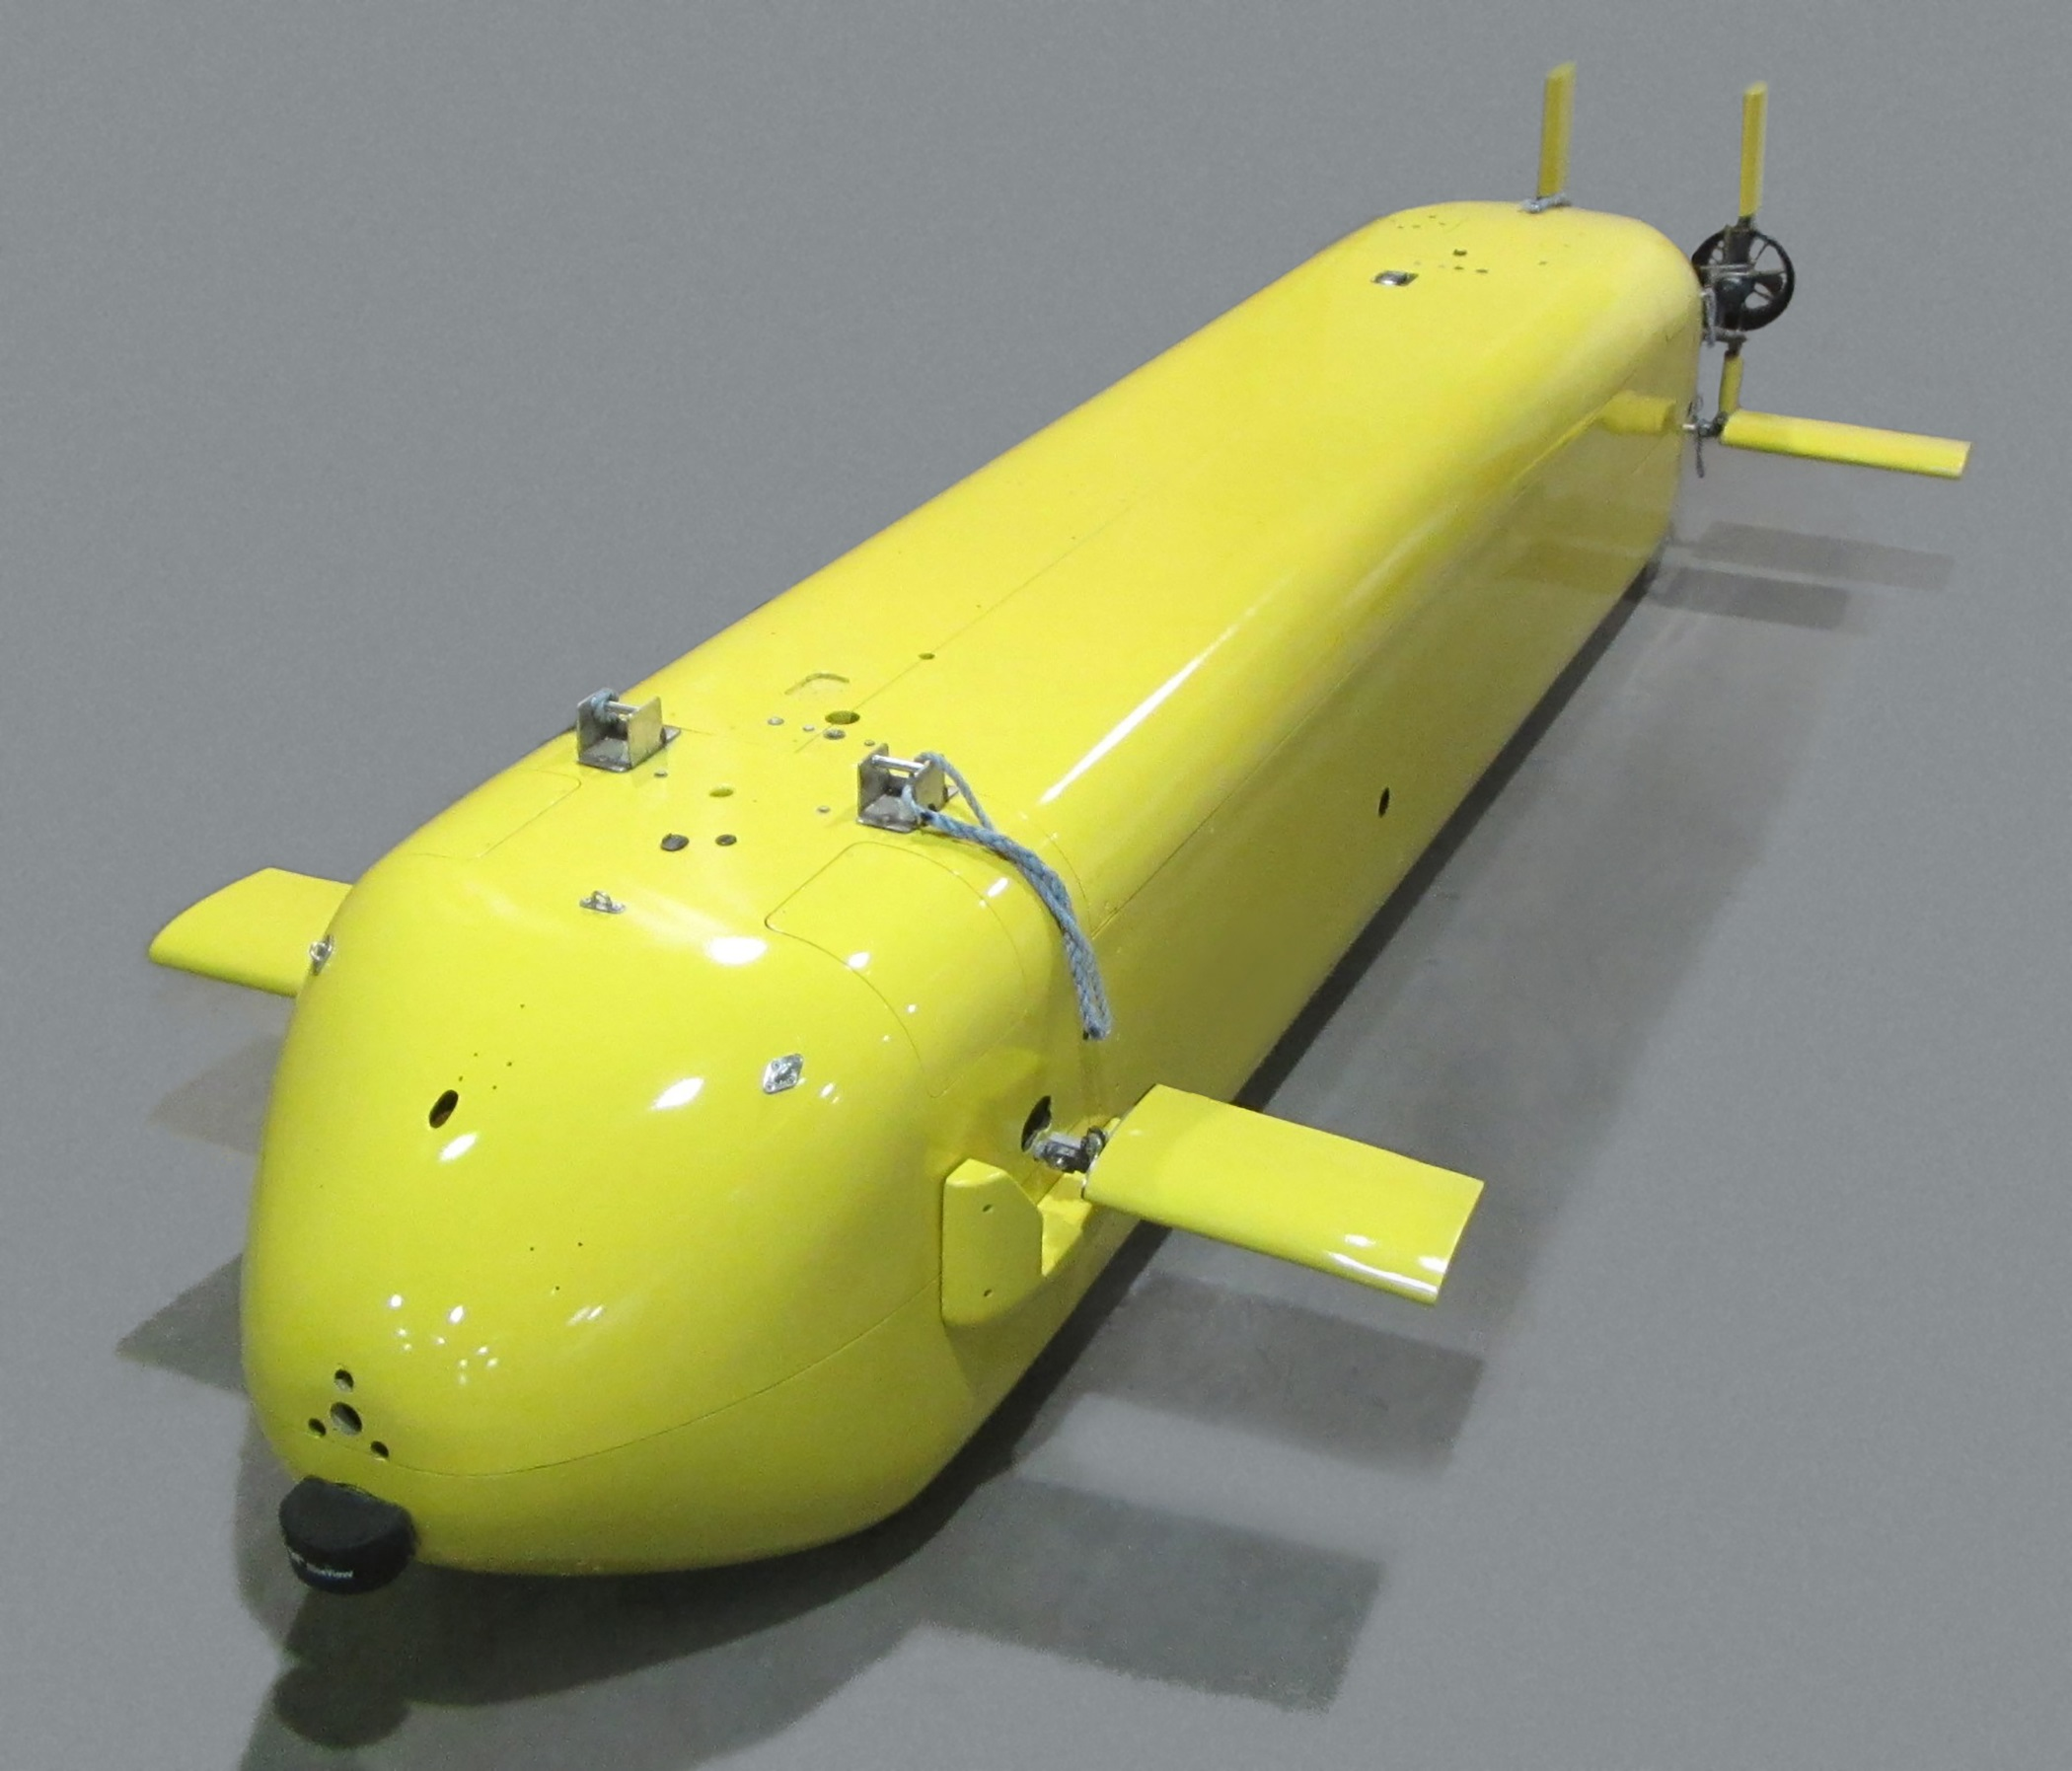 GM and U.S. Navy Collaborationd On Fuel Cell-Powered UUV